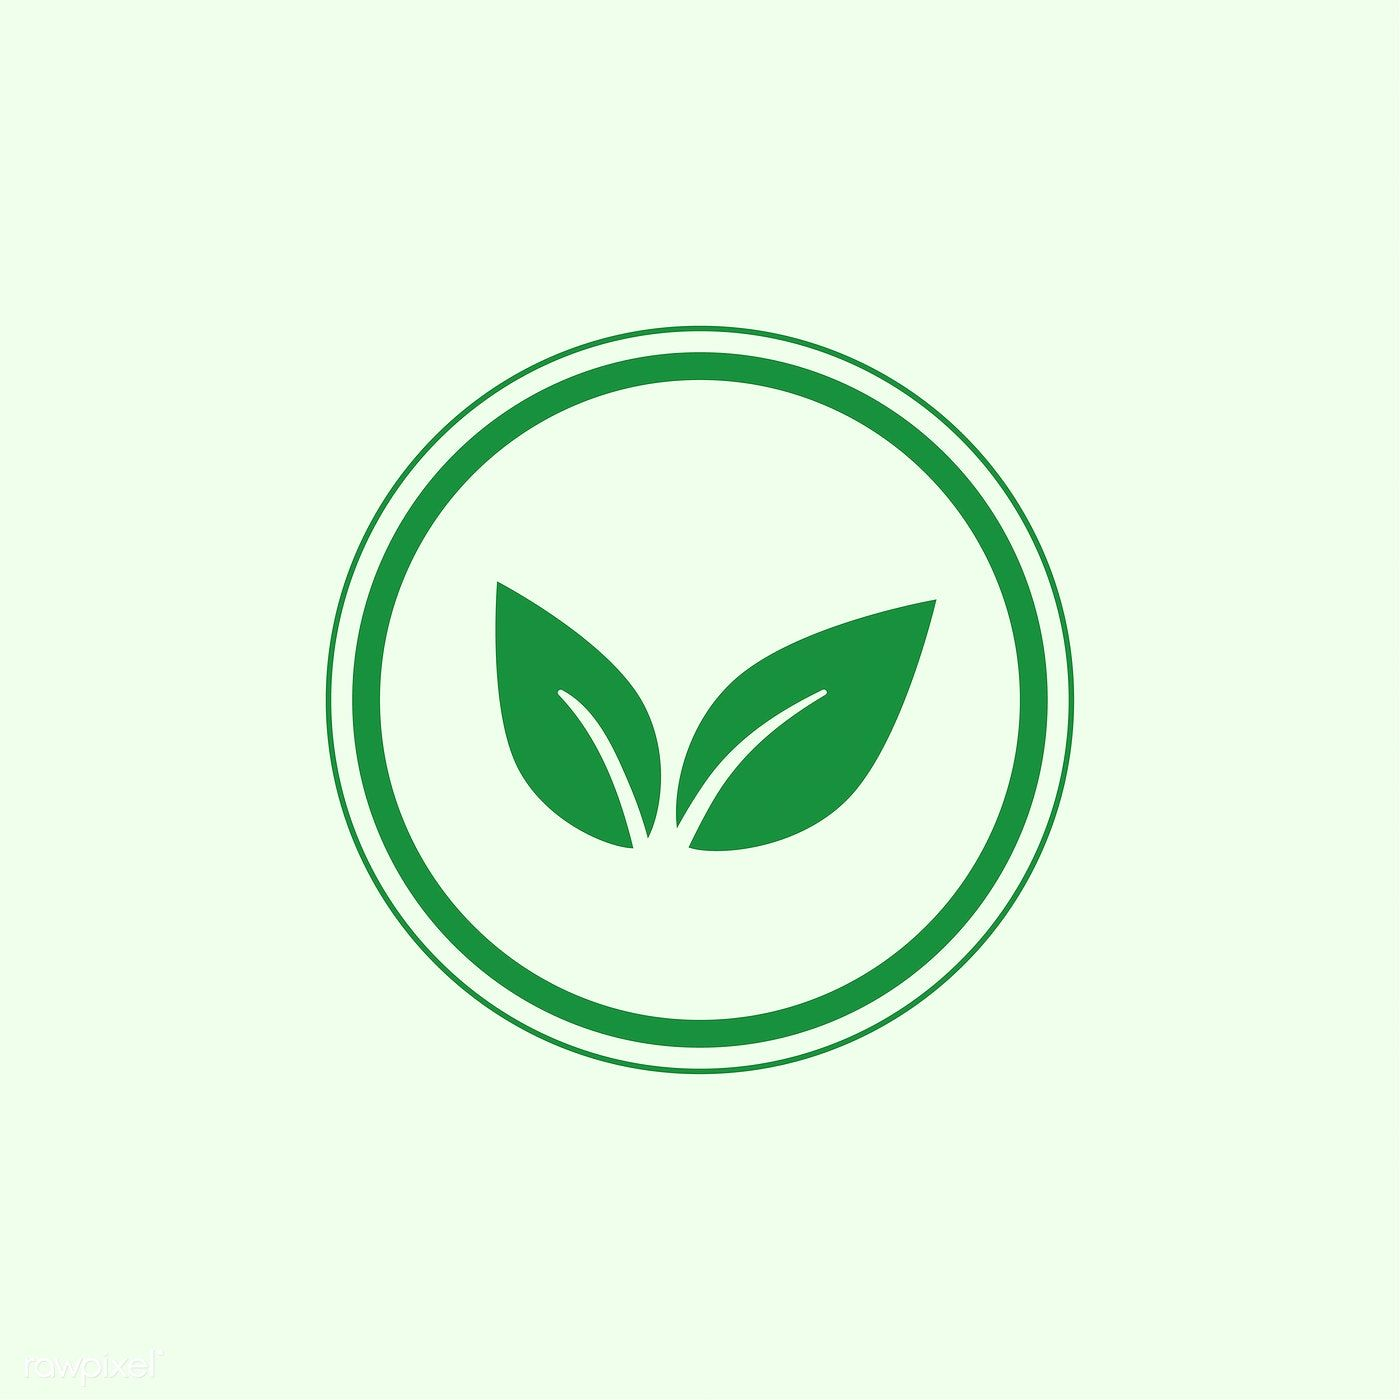 Green vegan logo vector in a circle free image by